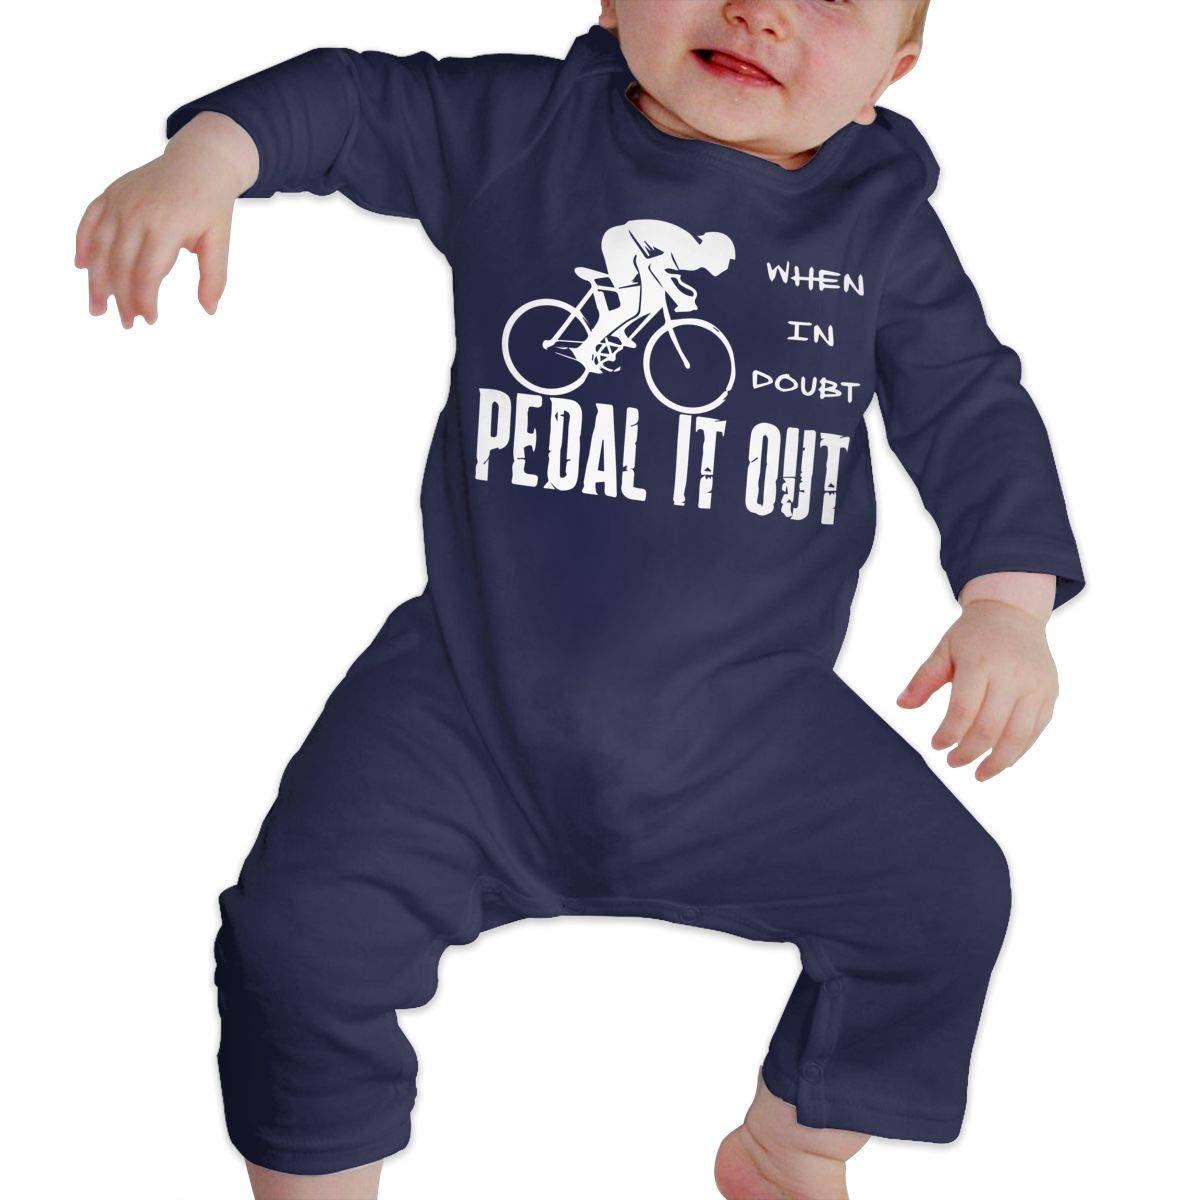 When in Doubt Pedal It Out Unisex Baby Long Sleeve Romper Pajama Clothes